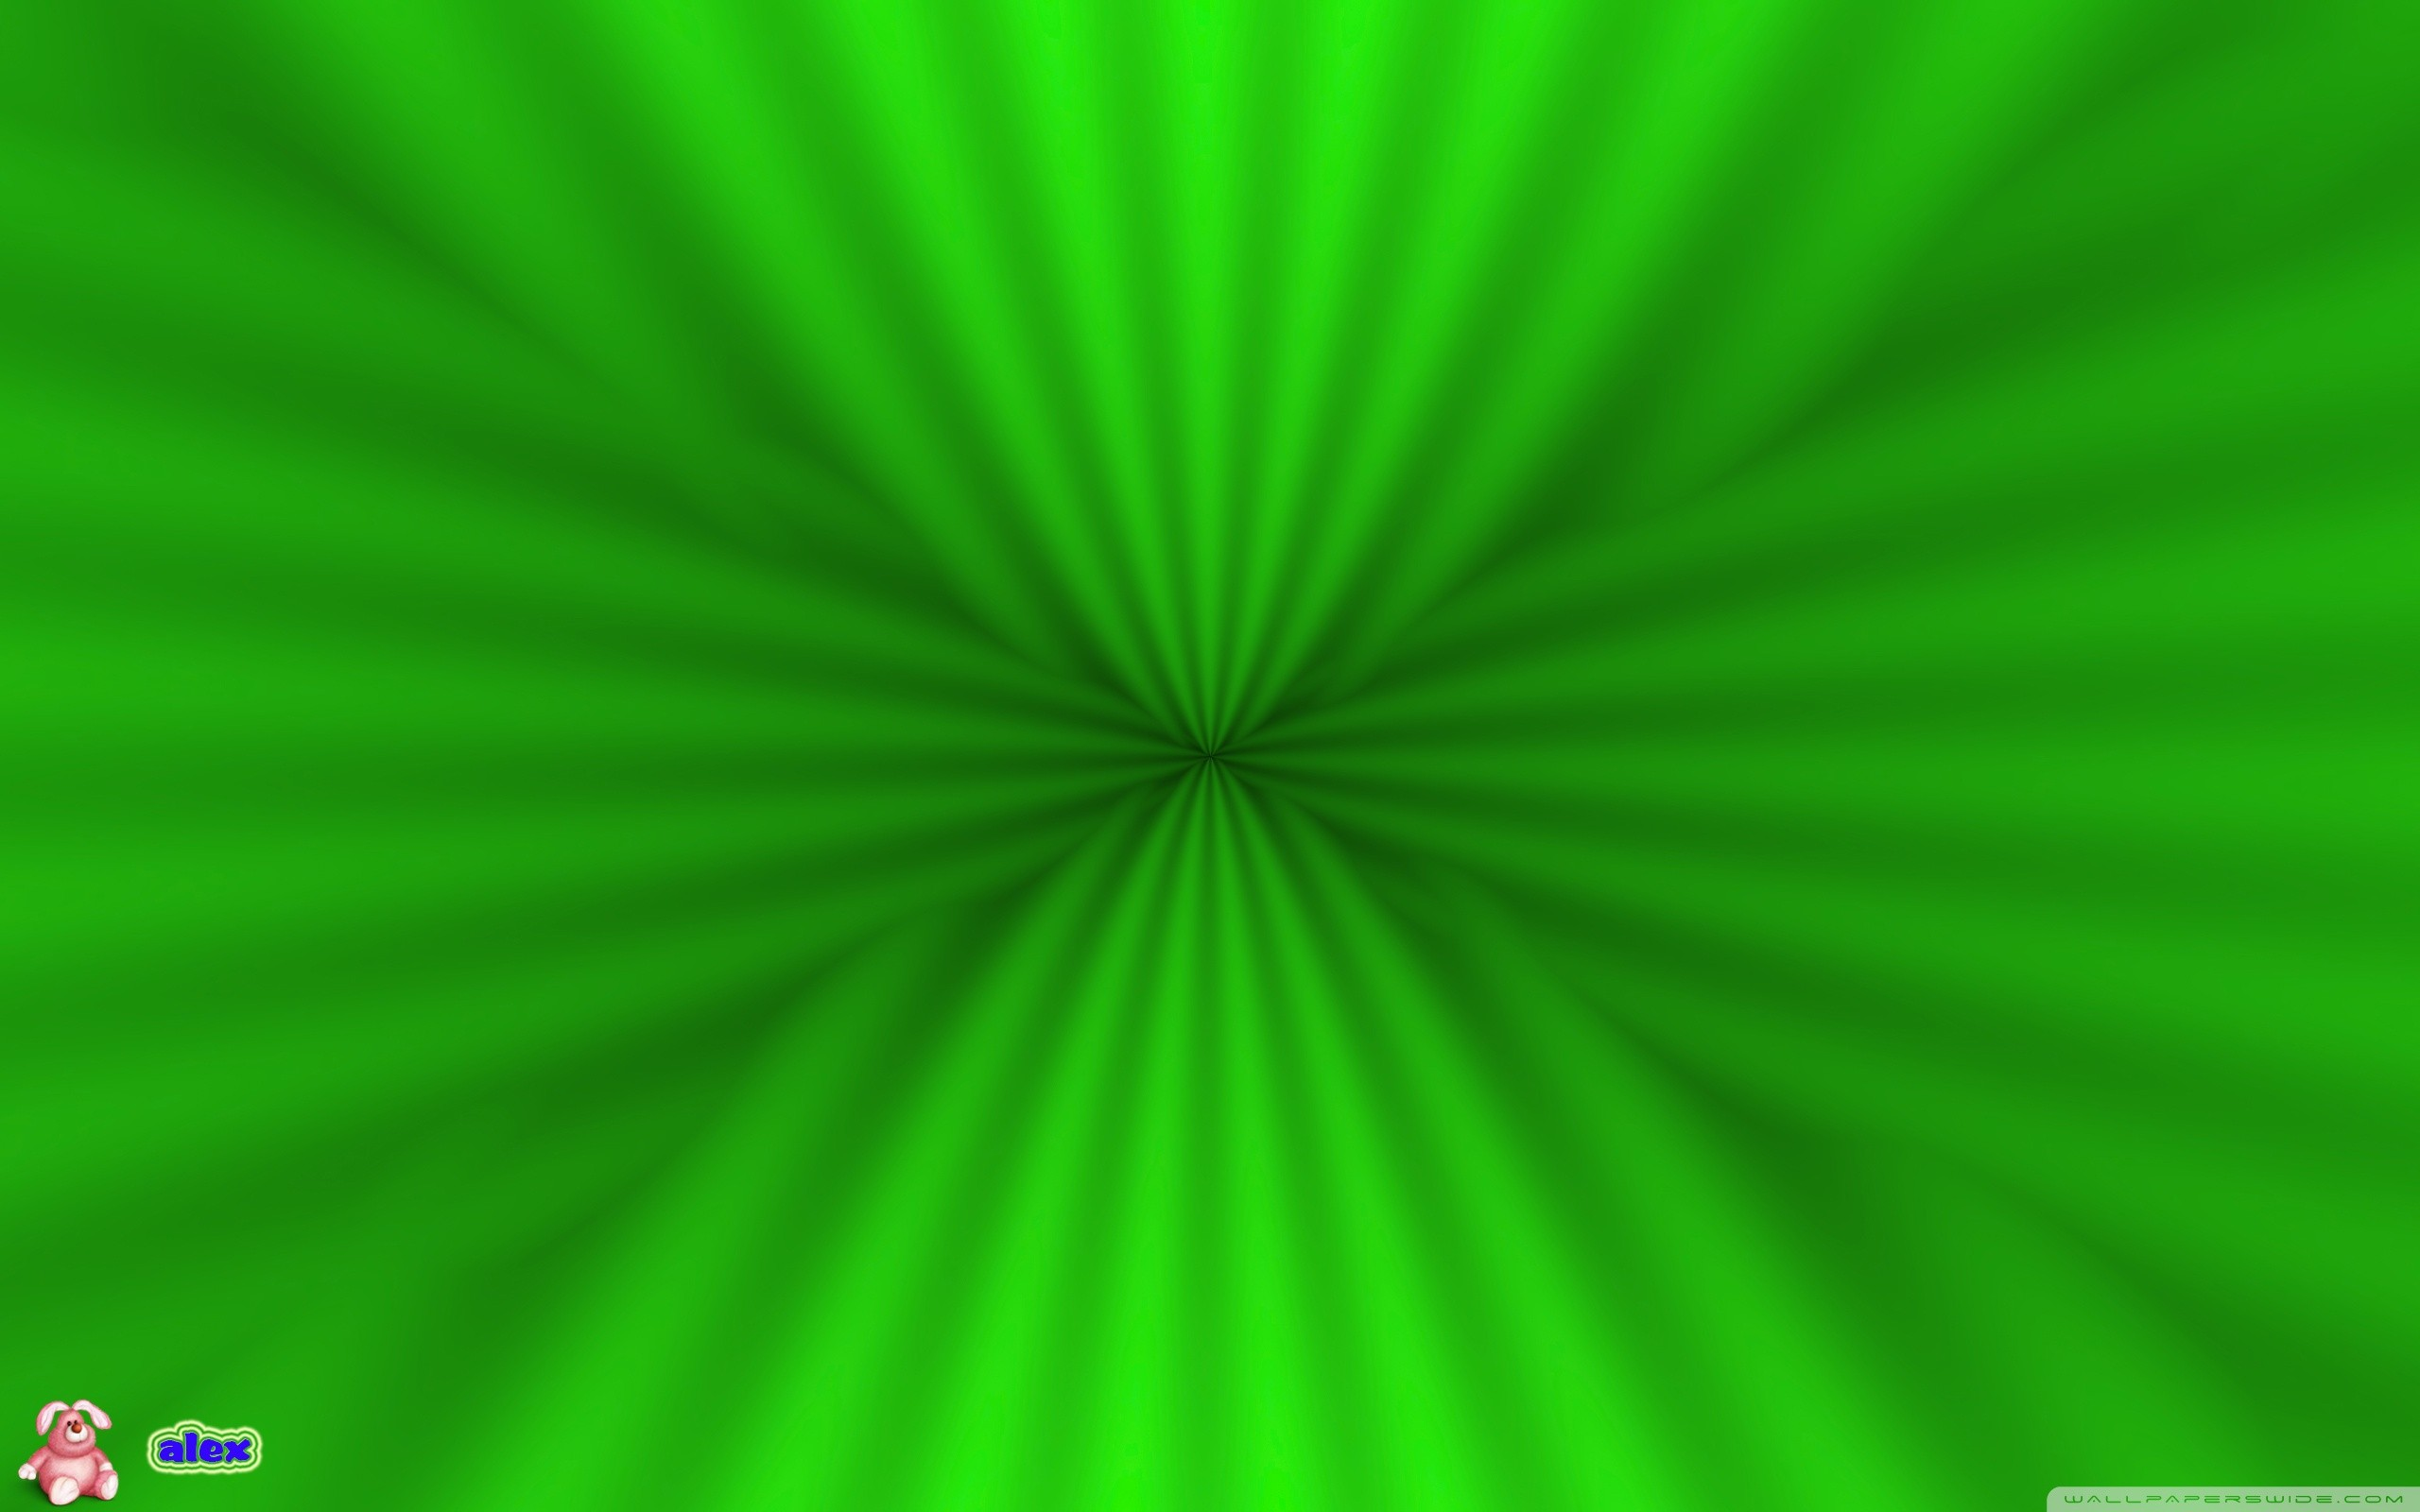 Green Background 183 ① Download Free Awesome Full Hd Backgrounds For Desktop Computers And